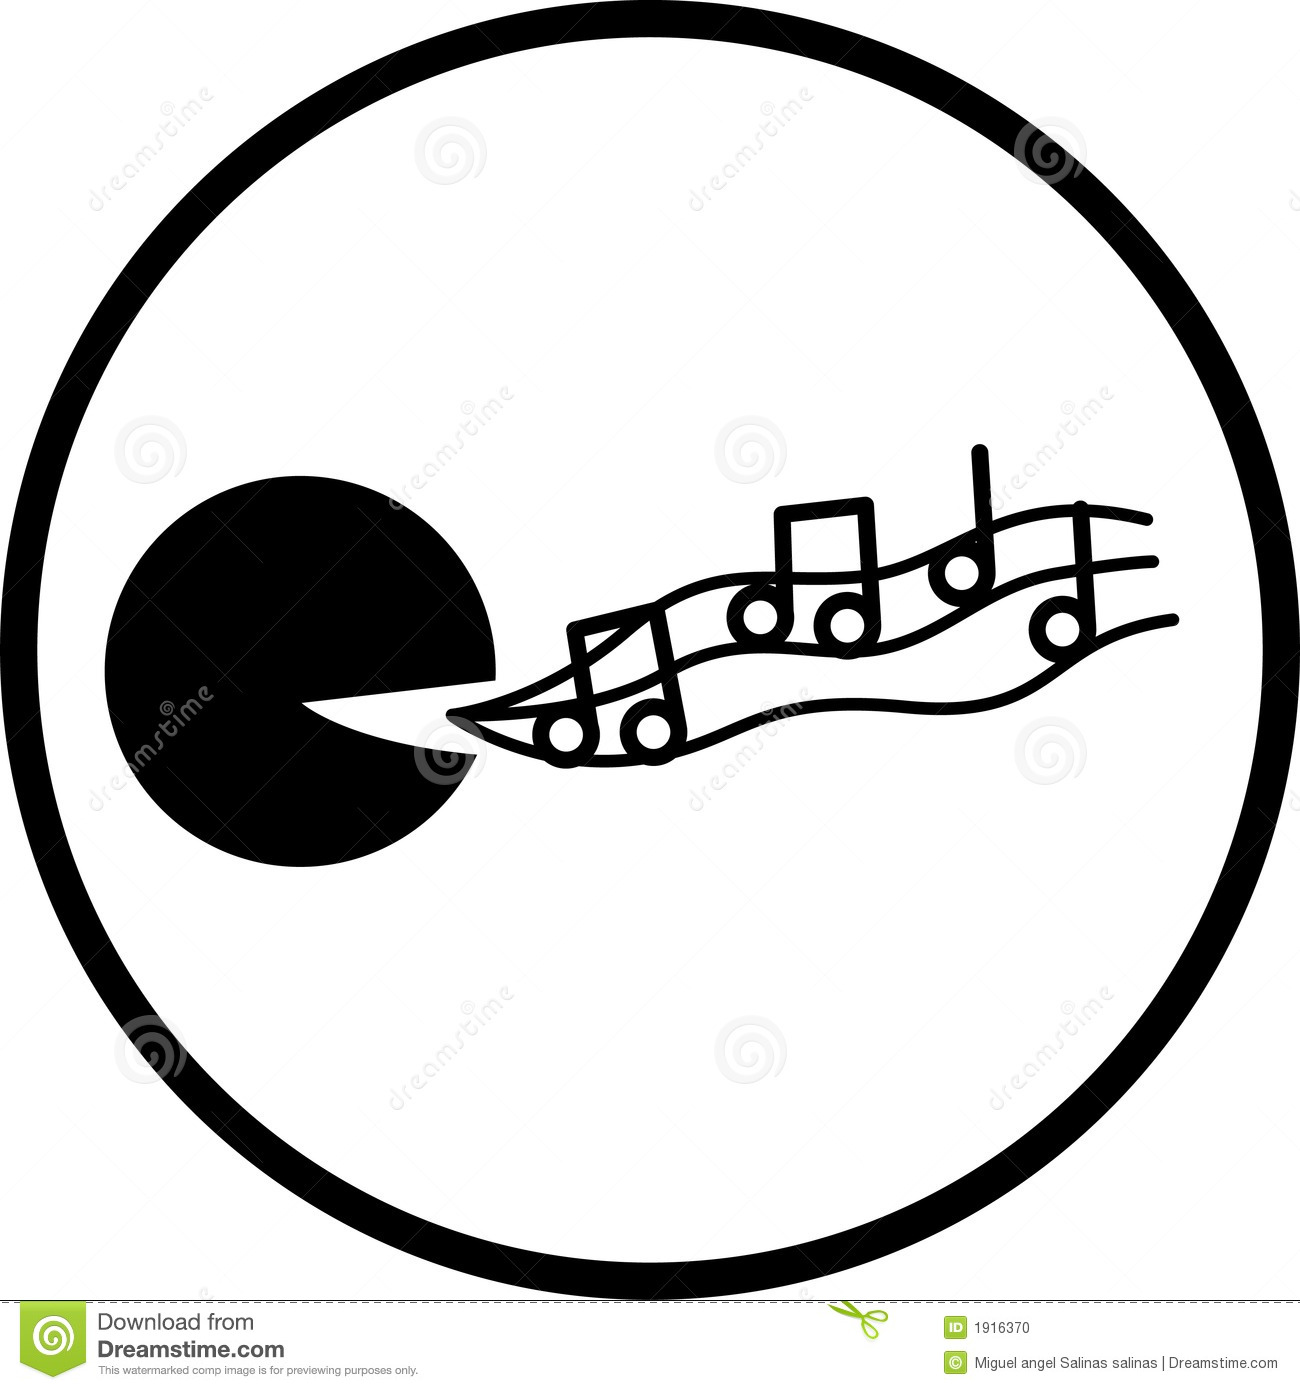 singing symbol wwwpixsharkcom images galleries with